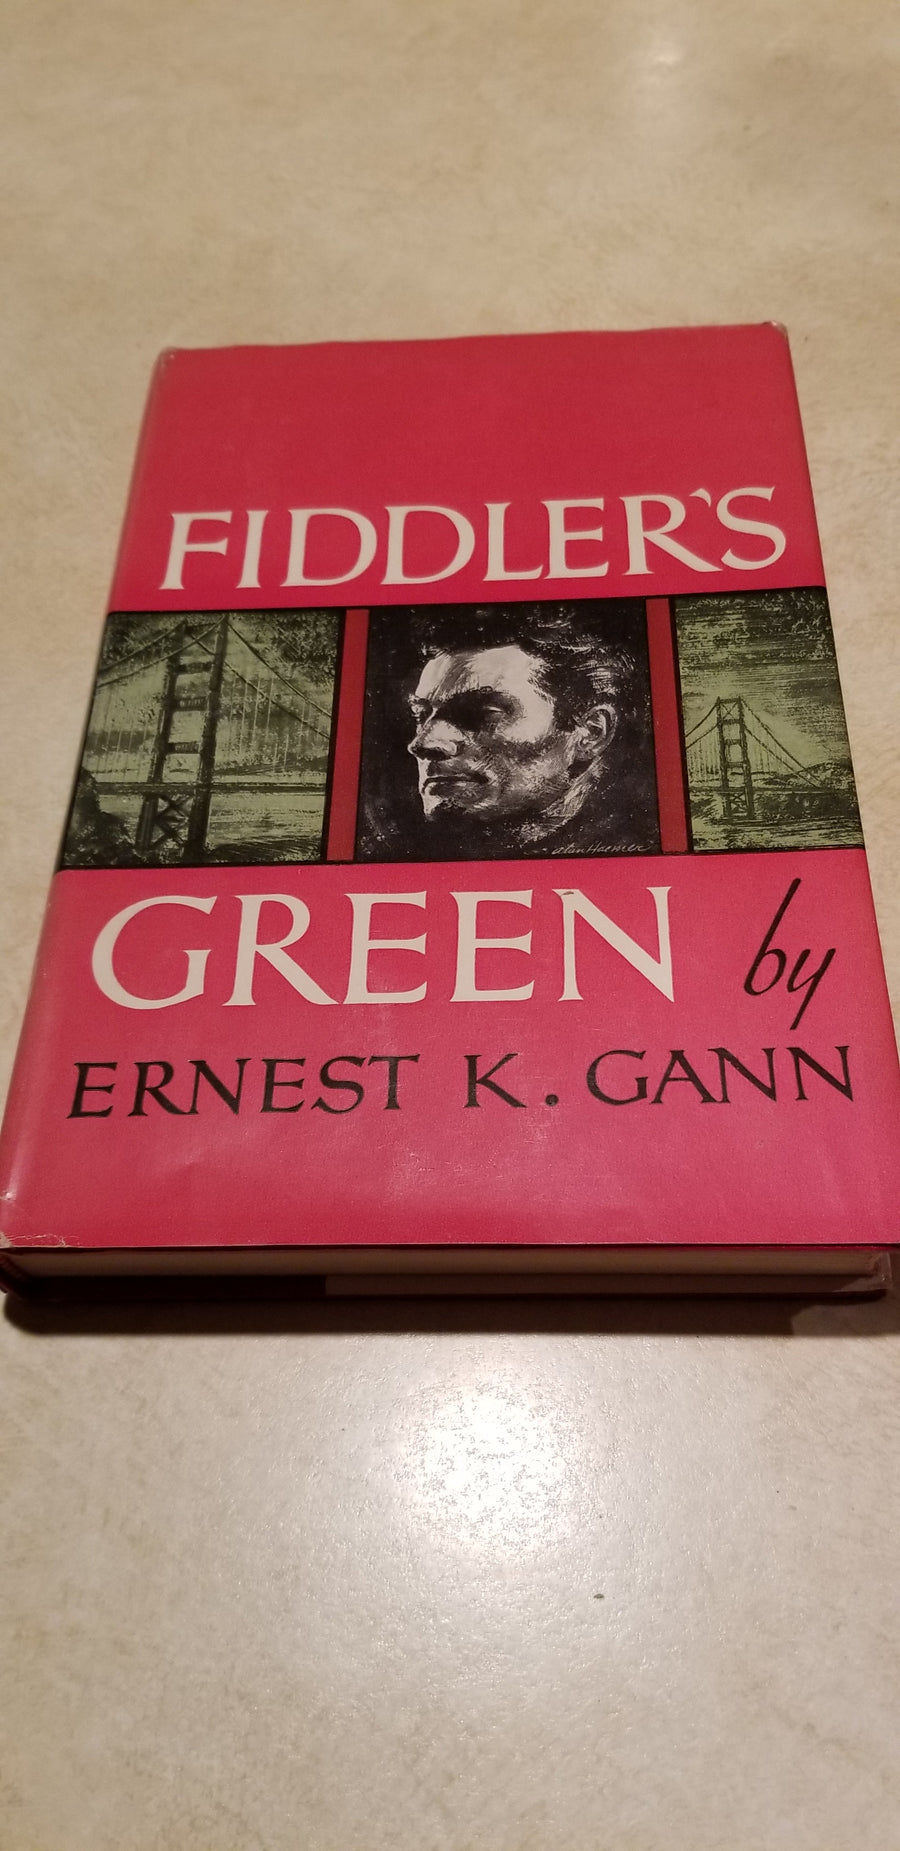 Fiddlers green, Gann, 1950